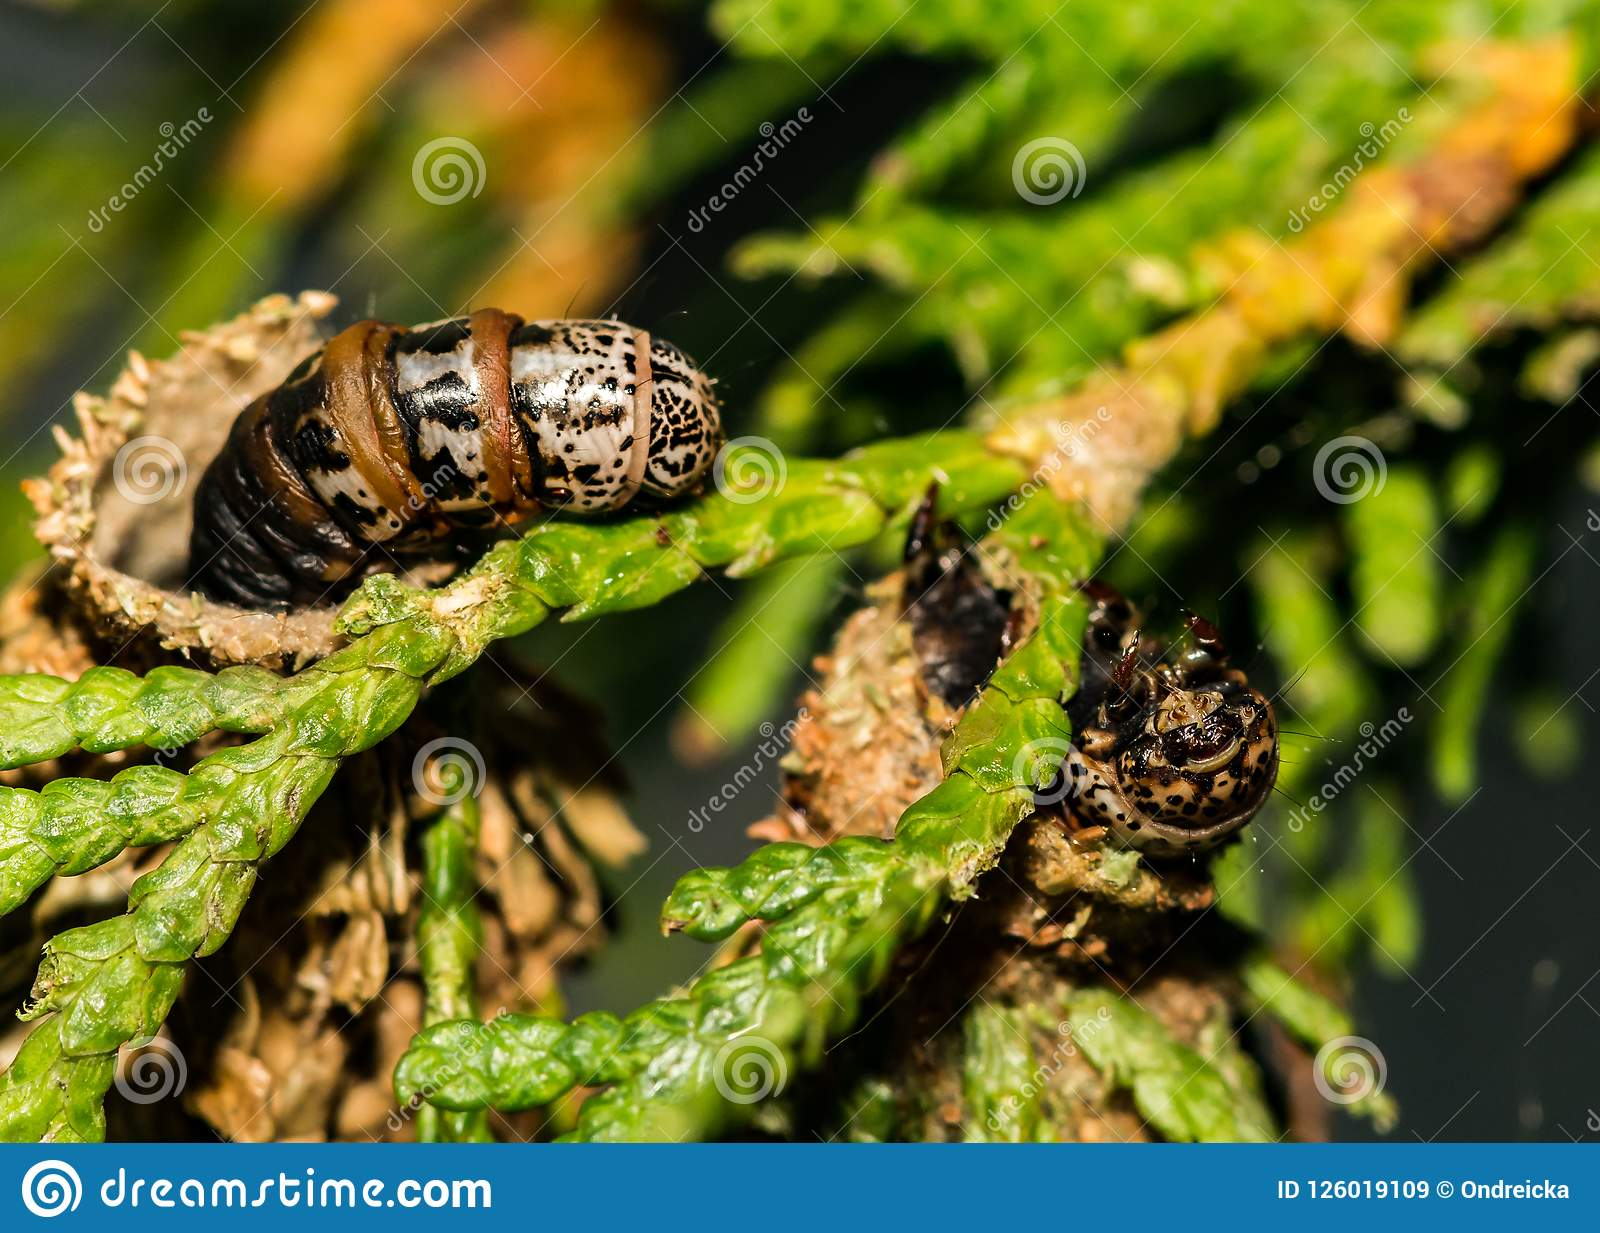 Evergreen Bagworm Eating An Ornamental Cedar Stock Image